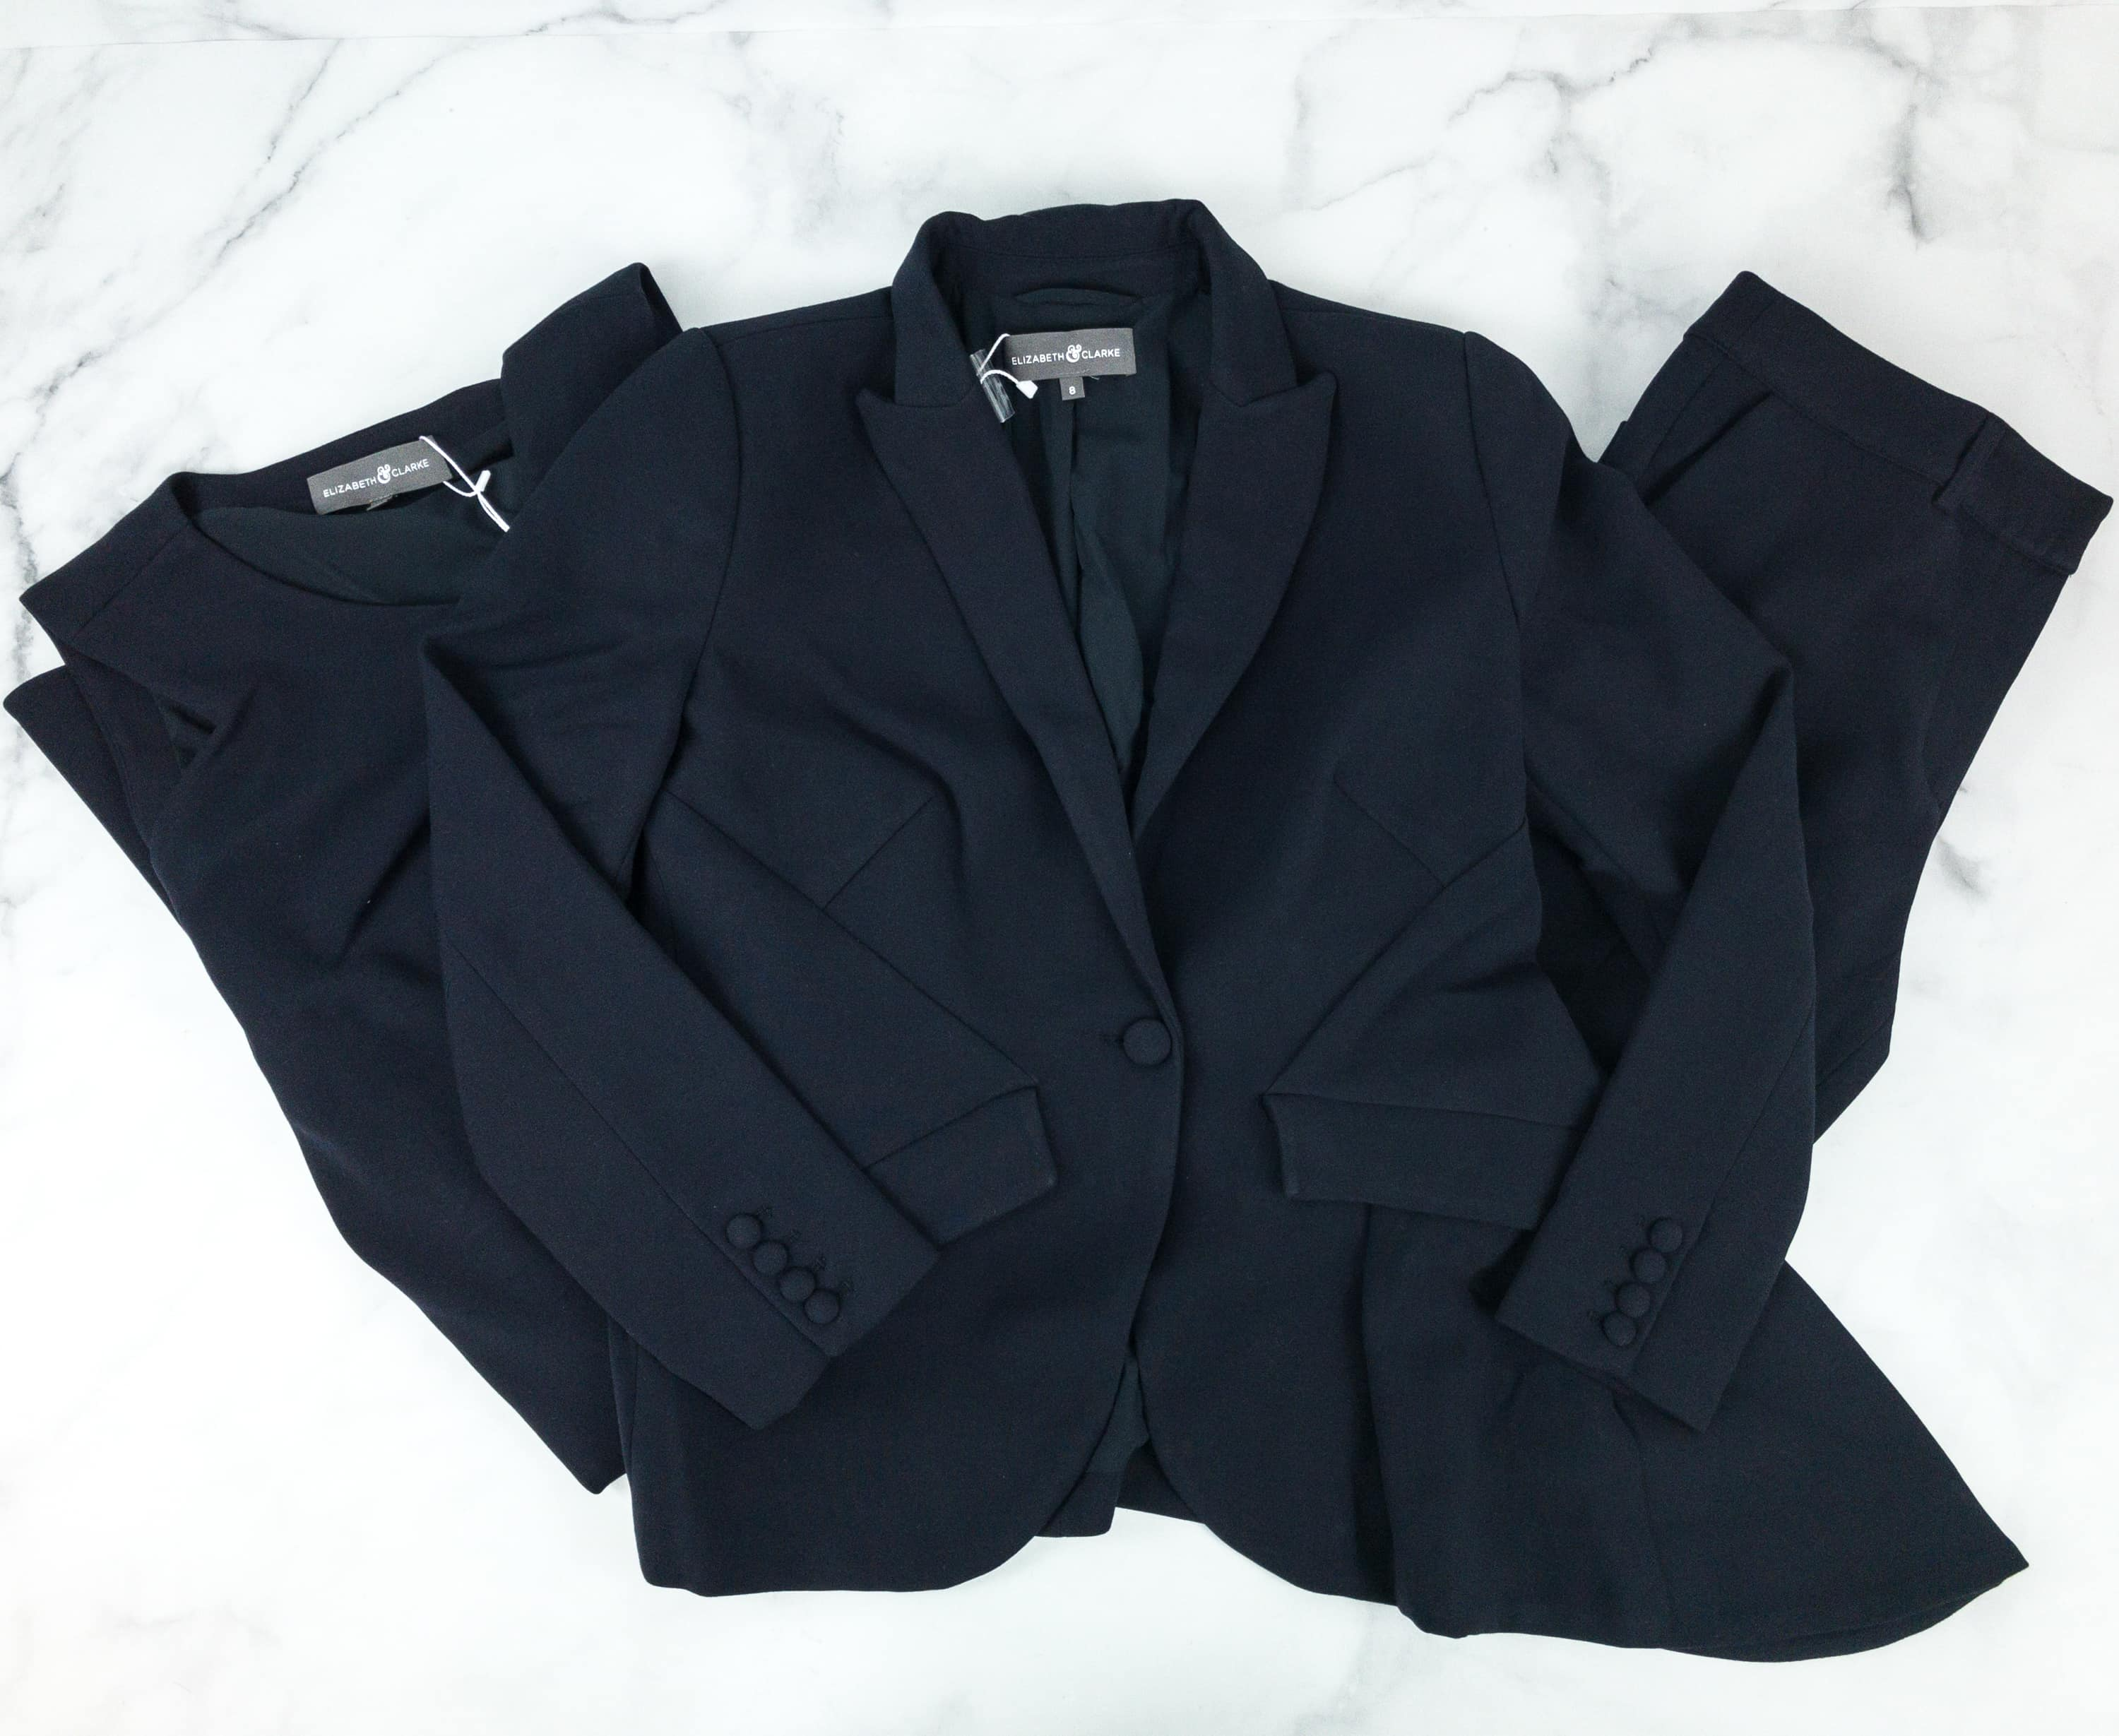 Elizabeth & Clarke Suit Separates Winter 2018-2019 Review + Coupon!